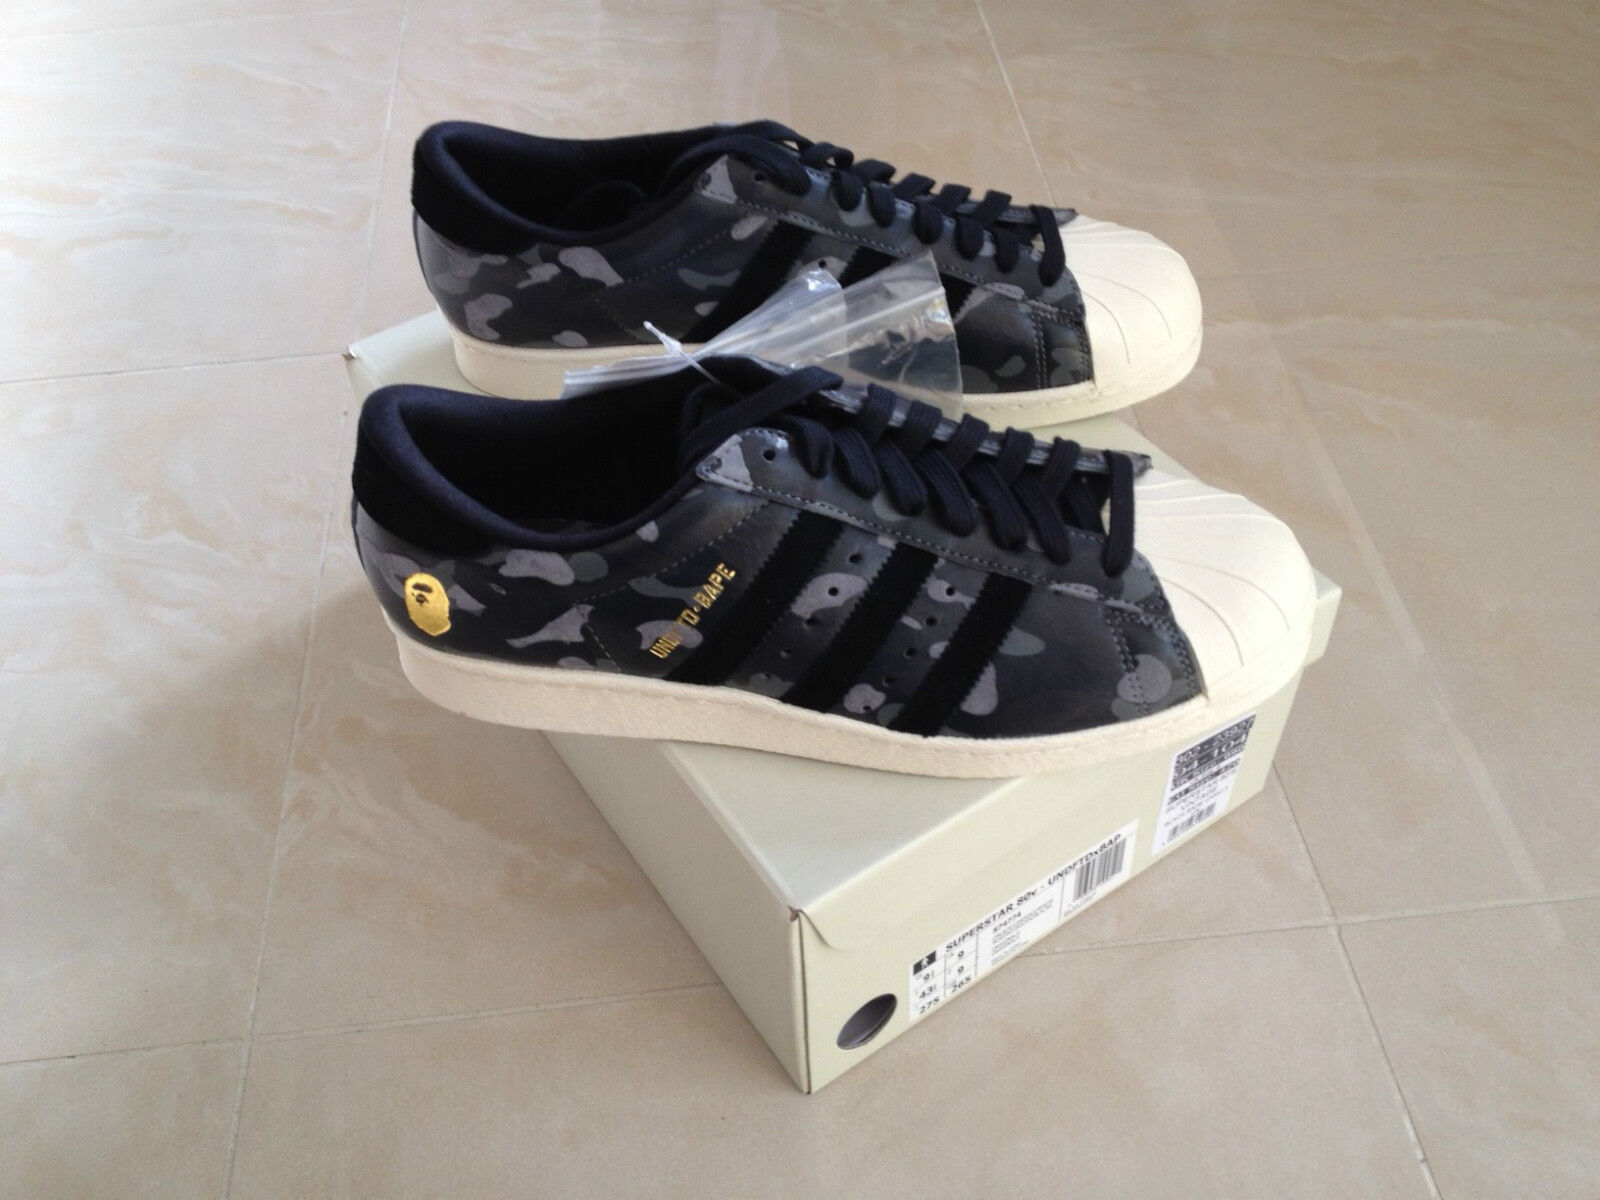 ADIDAS CONSORTIUM X UNDFTD X BAPE BAPE BAPE SUPERSTAR 80V BLACK CAMO ALL SIZES 5-11 NEW 6ebf35